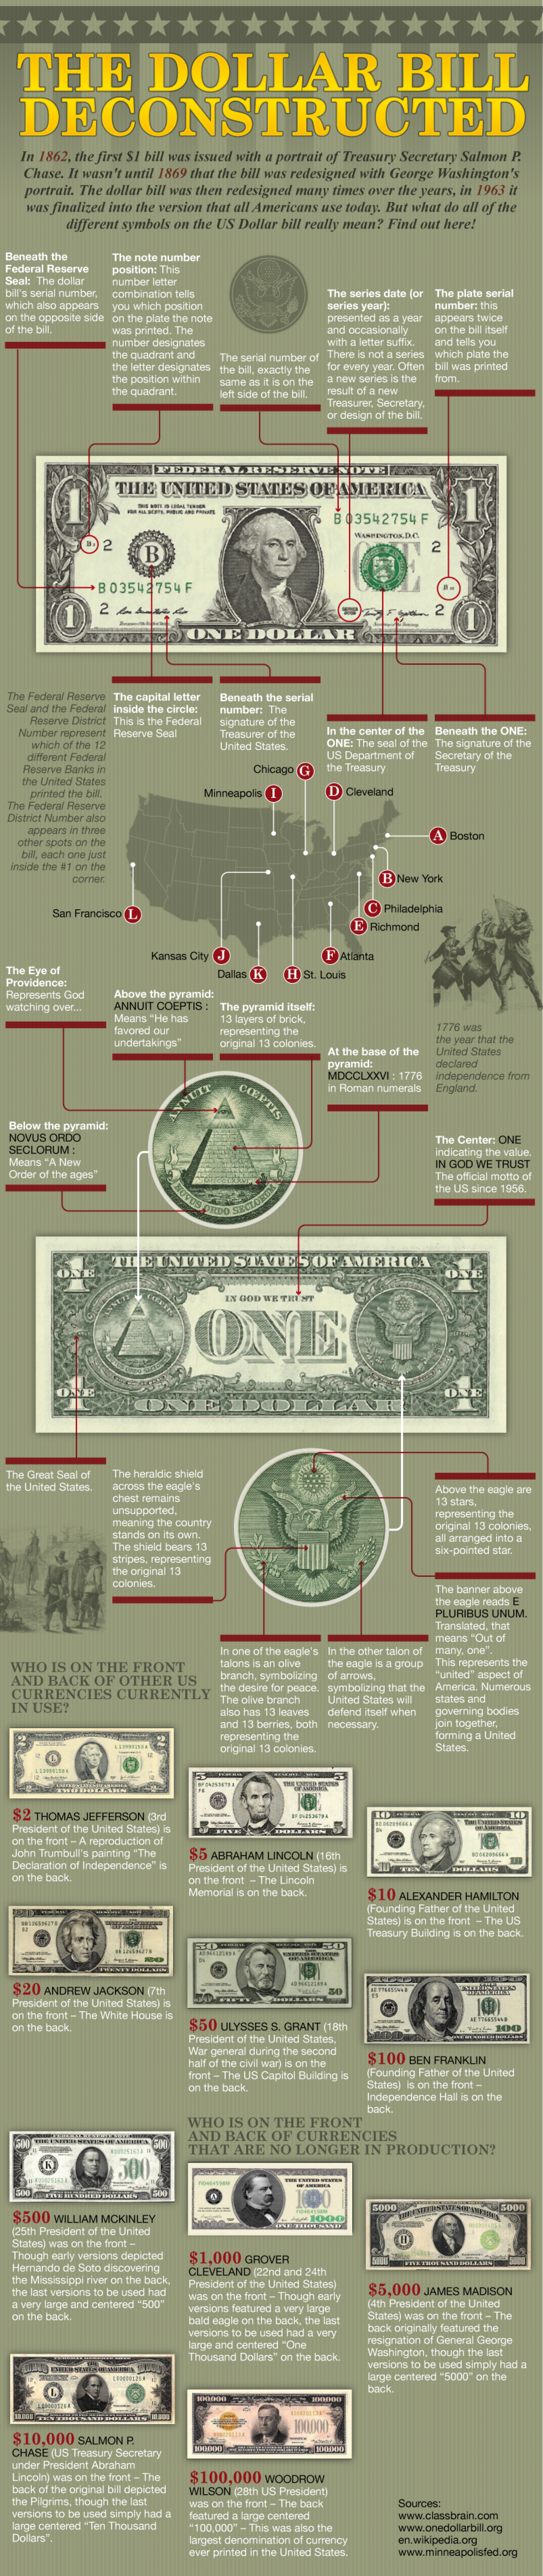 The Dollar Bill Deconstructed Infographic